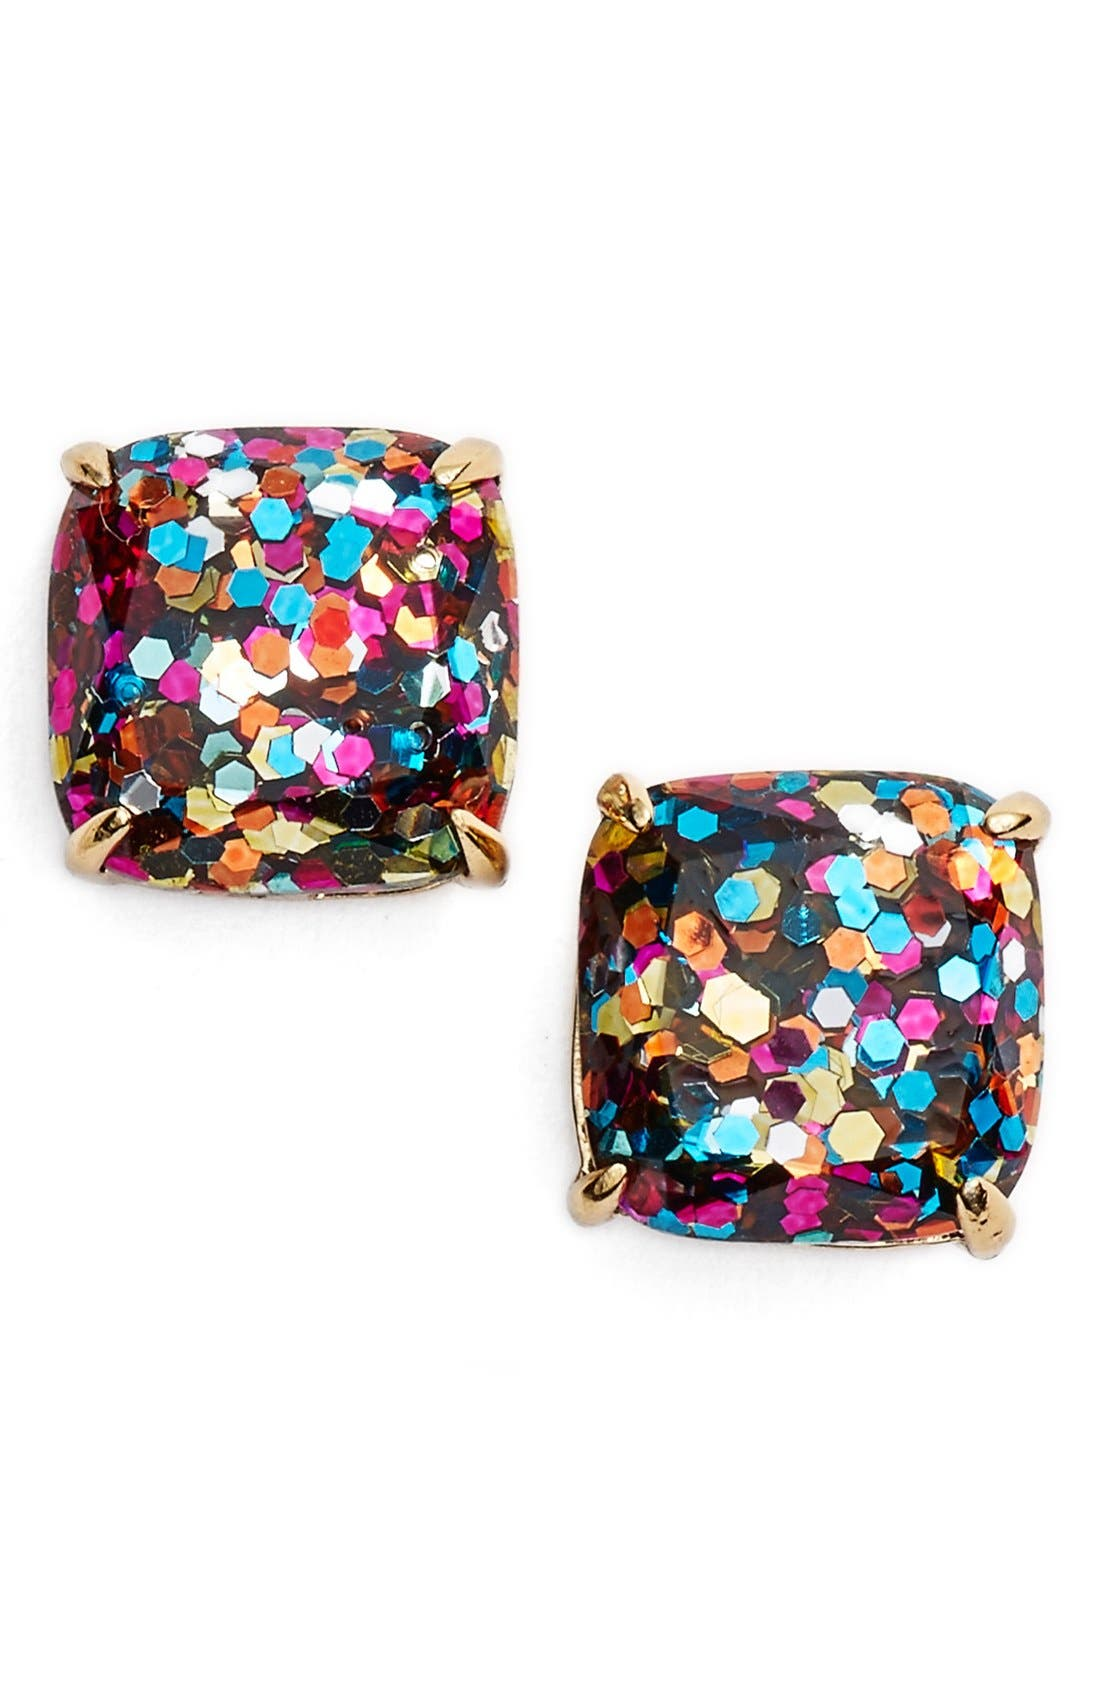 KATE SPADE NEW YORK mini small square stud